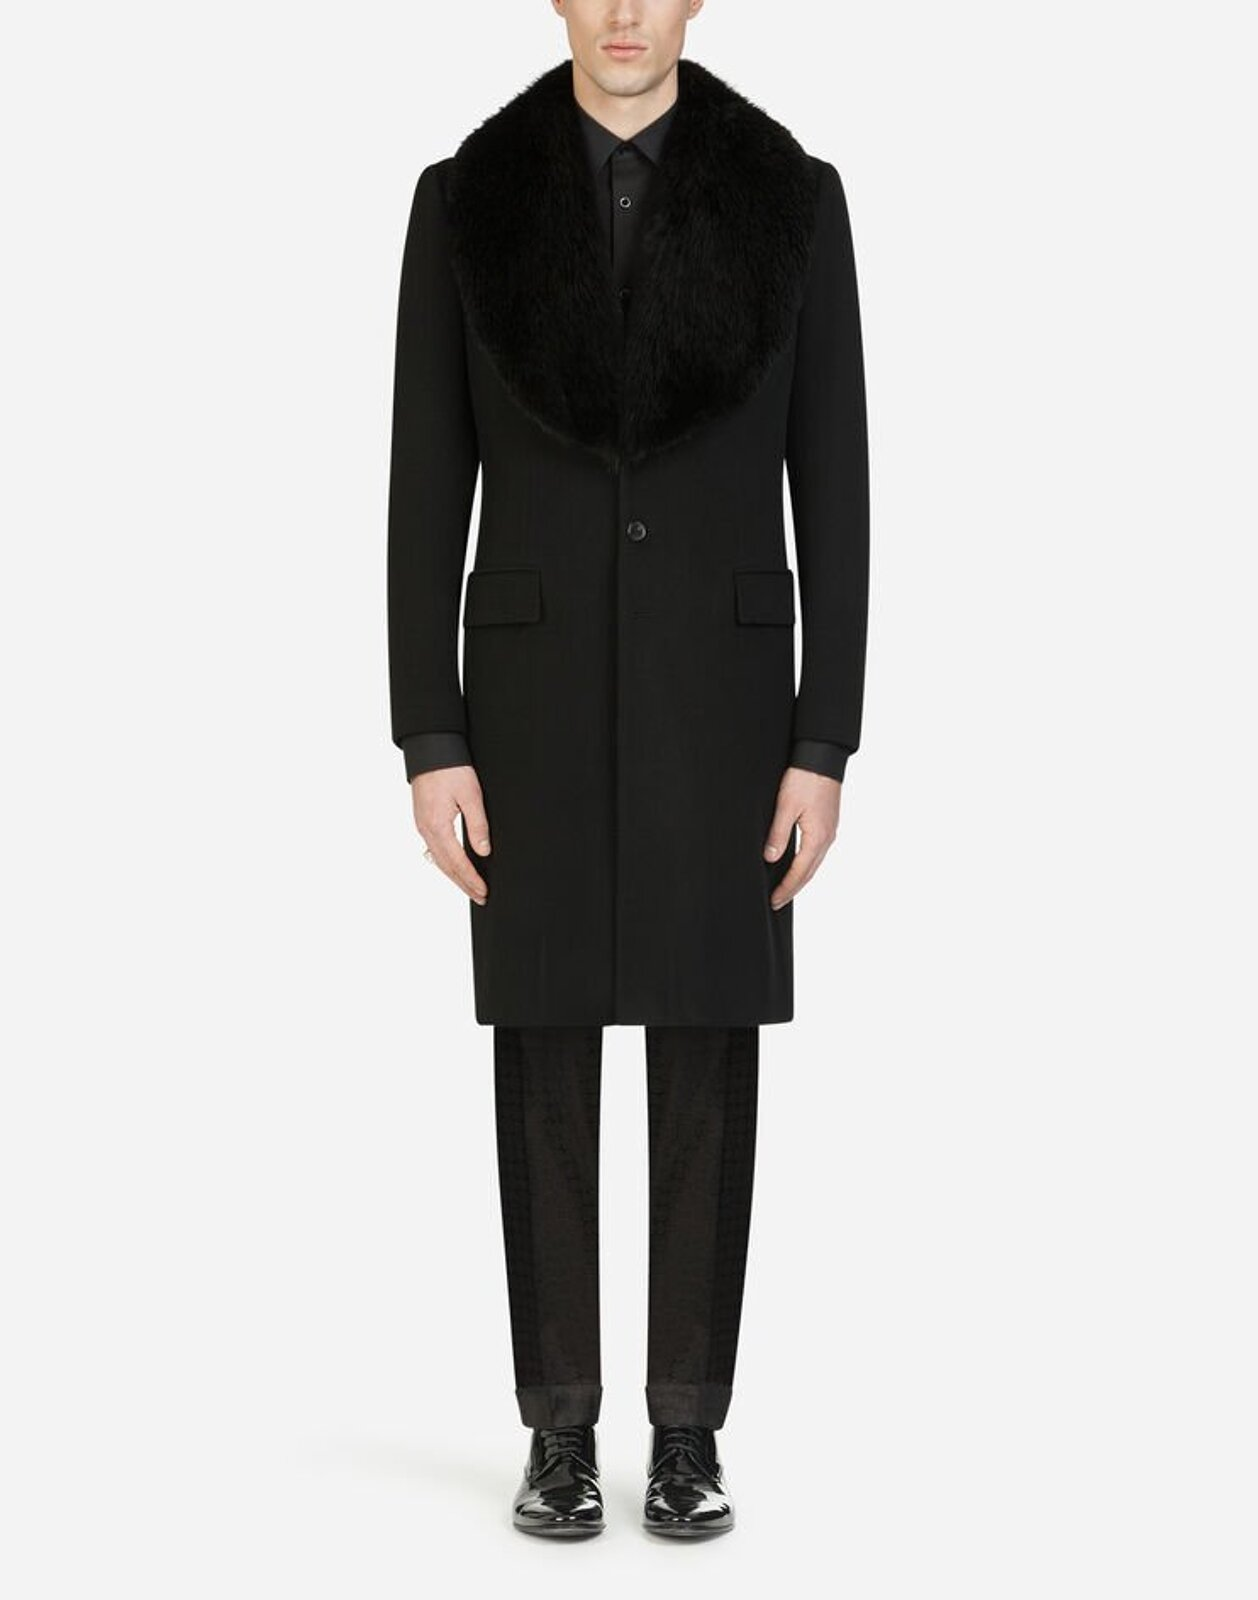 Wool And Cashmere Cloth Coat - Dolce & Gabbana